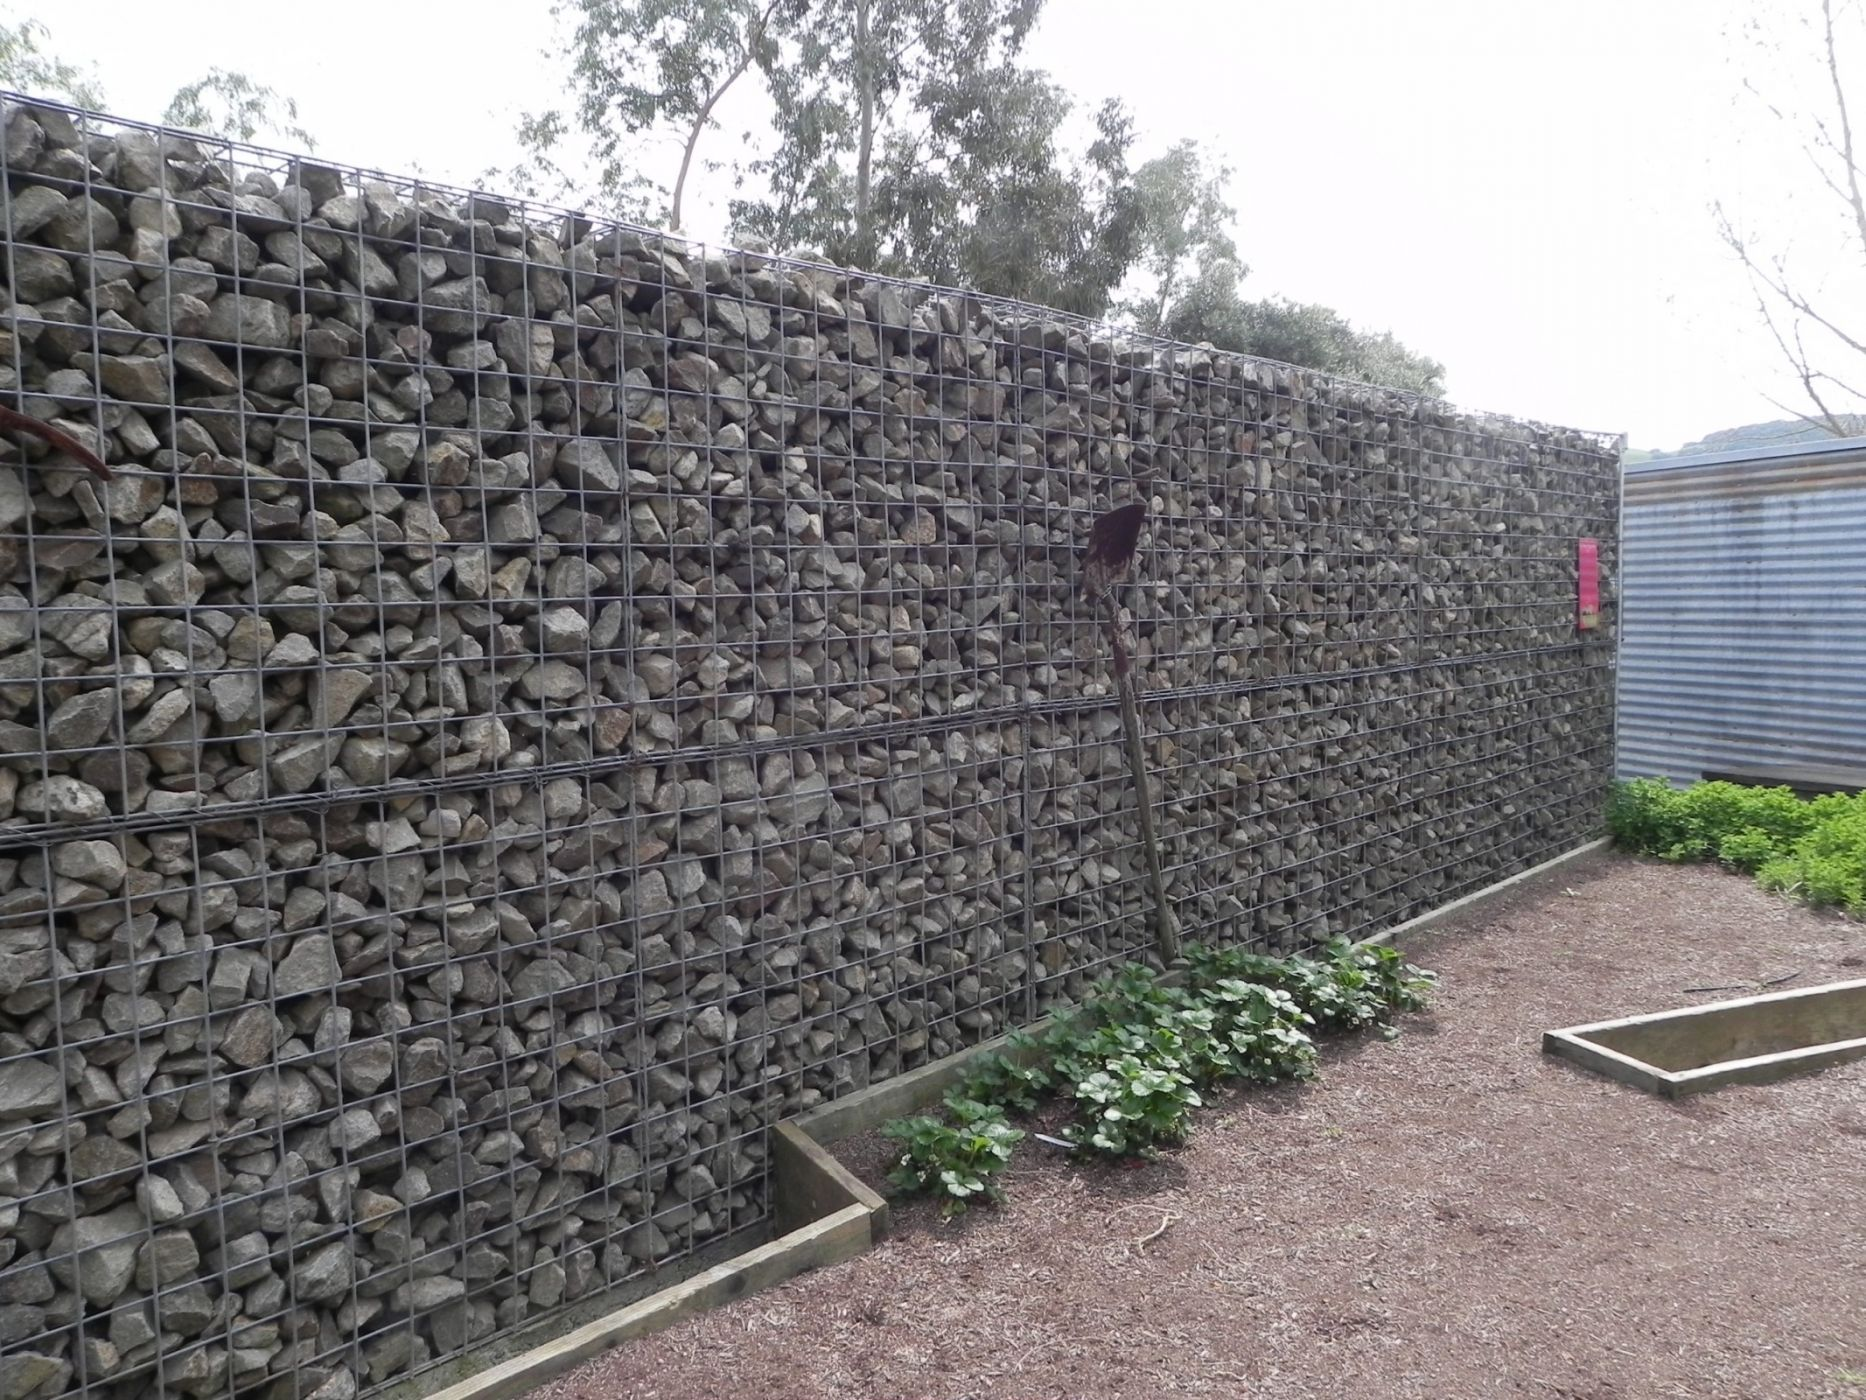 Gabion walls at Cornerstone Sonoma — Sublime Garden Design ... on garden ideas, garden hill designs, rock garden designs, garden landscaping, simple garden designs, landscaping designs, garden stone designs, garden designs and layouts, water garden designs, small japanese garden designs, garden path, garden flowers, garden gate designs, garden art made from recycled materials, garden barn designs, garden lattice designs, garden arbors, garden sign designs, garden retaining walls, greenhouse designs,